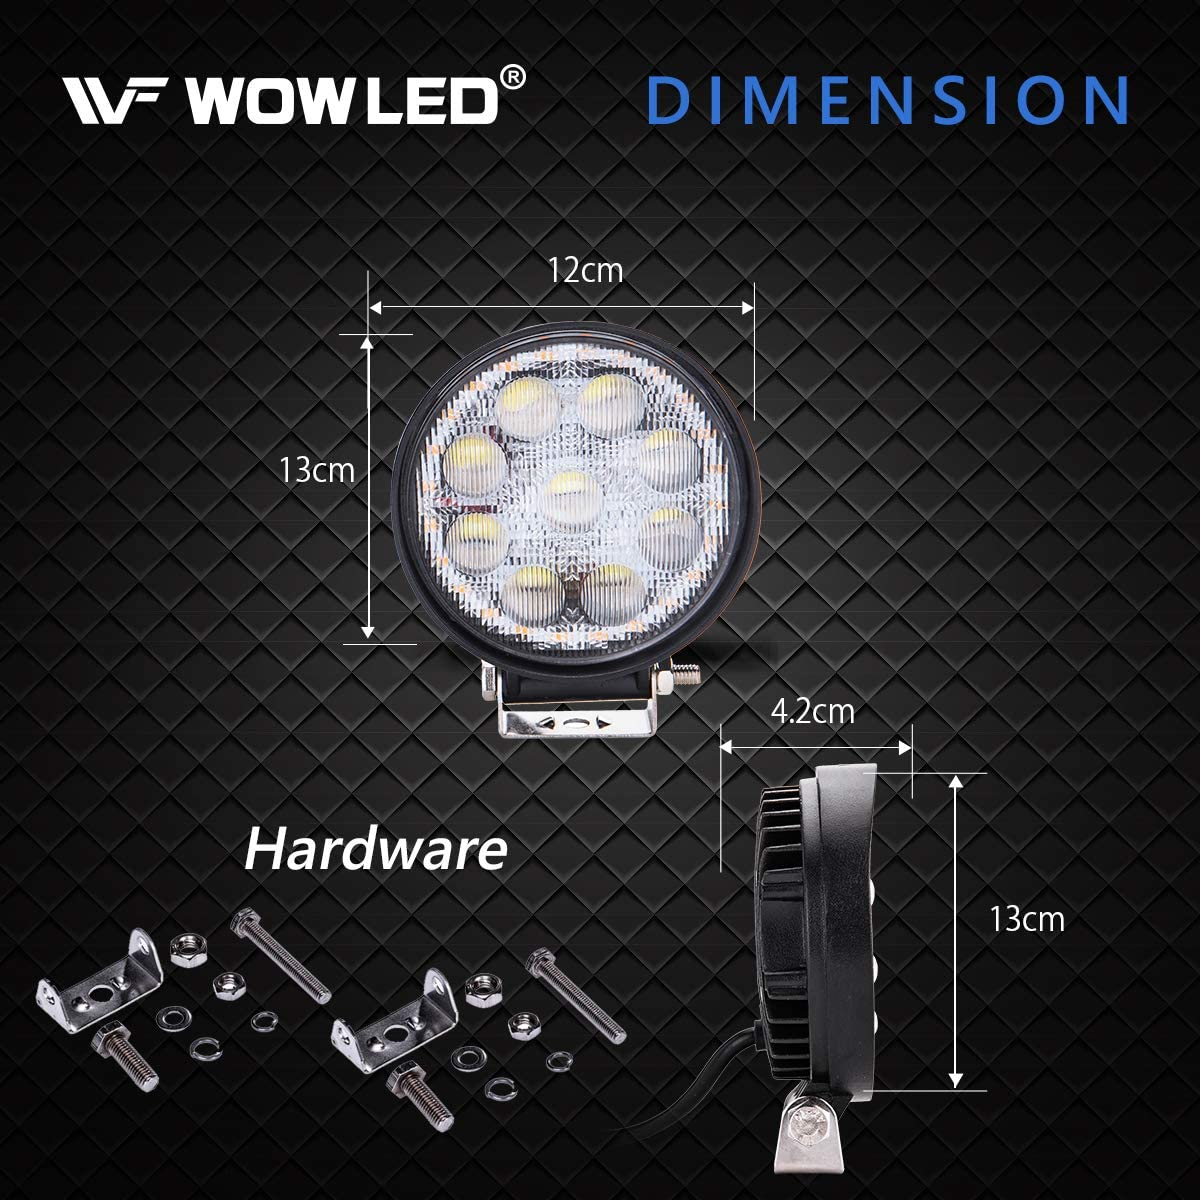 WOWLED 2x 27W 5D LED Work Light Flood 3 Color Mode With Amber Daytime Running light Car Lamps